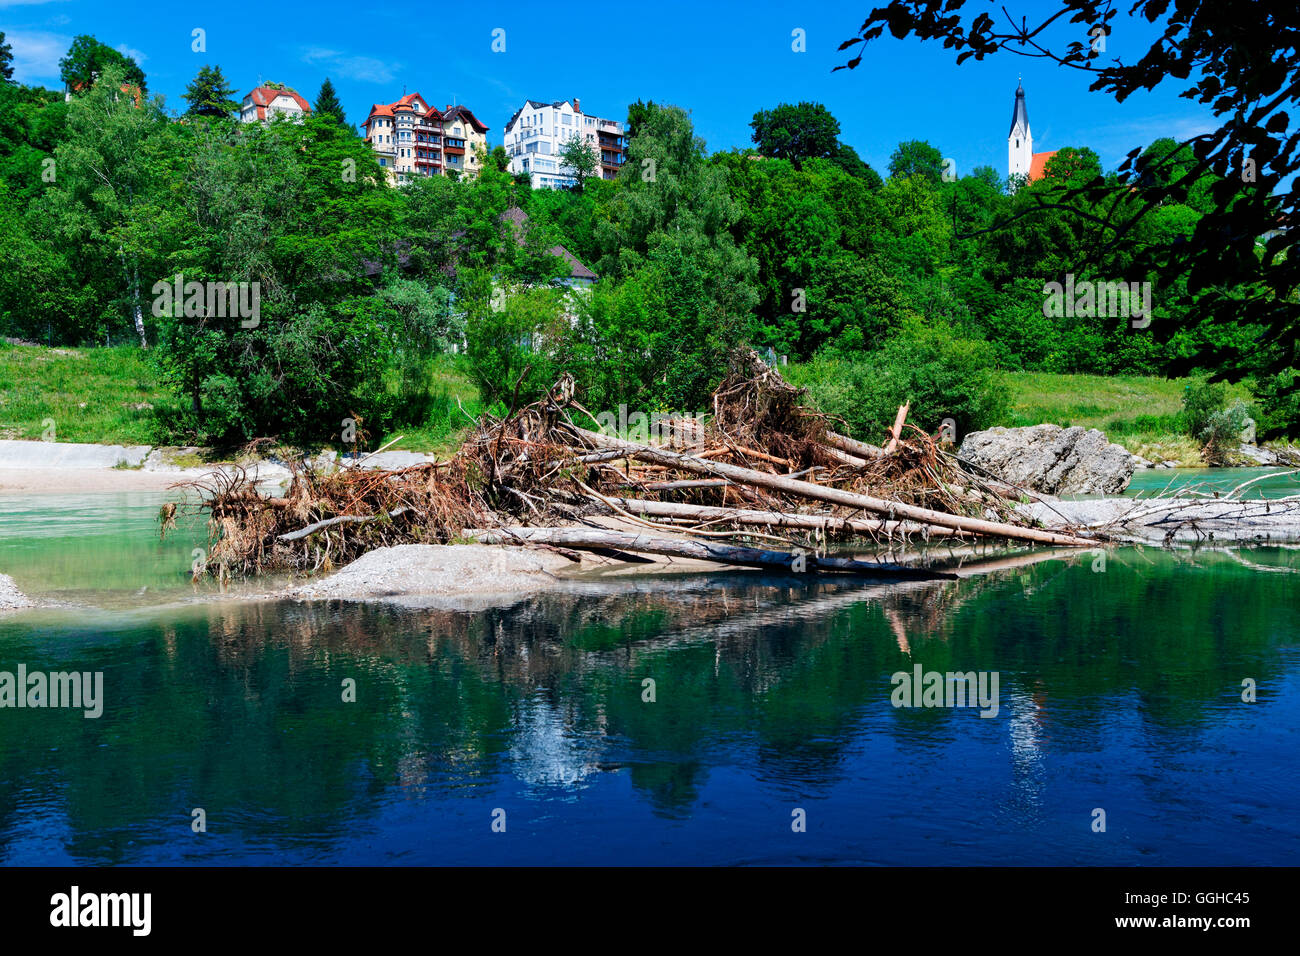 Piles of driftwood on the river Isar, Pullach, Munich, Upper Bavaria, Bavaria, Germany - Stock Image